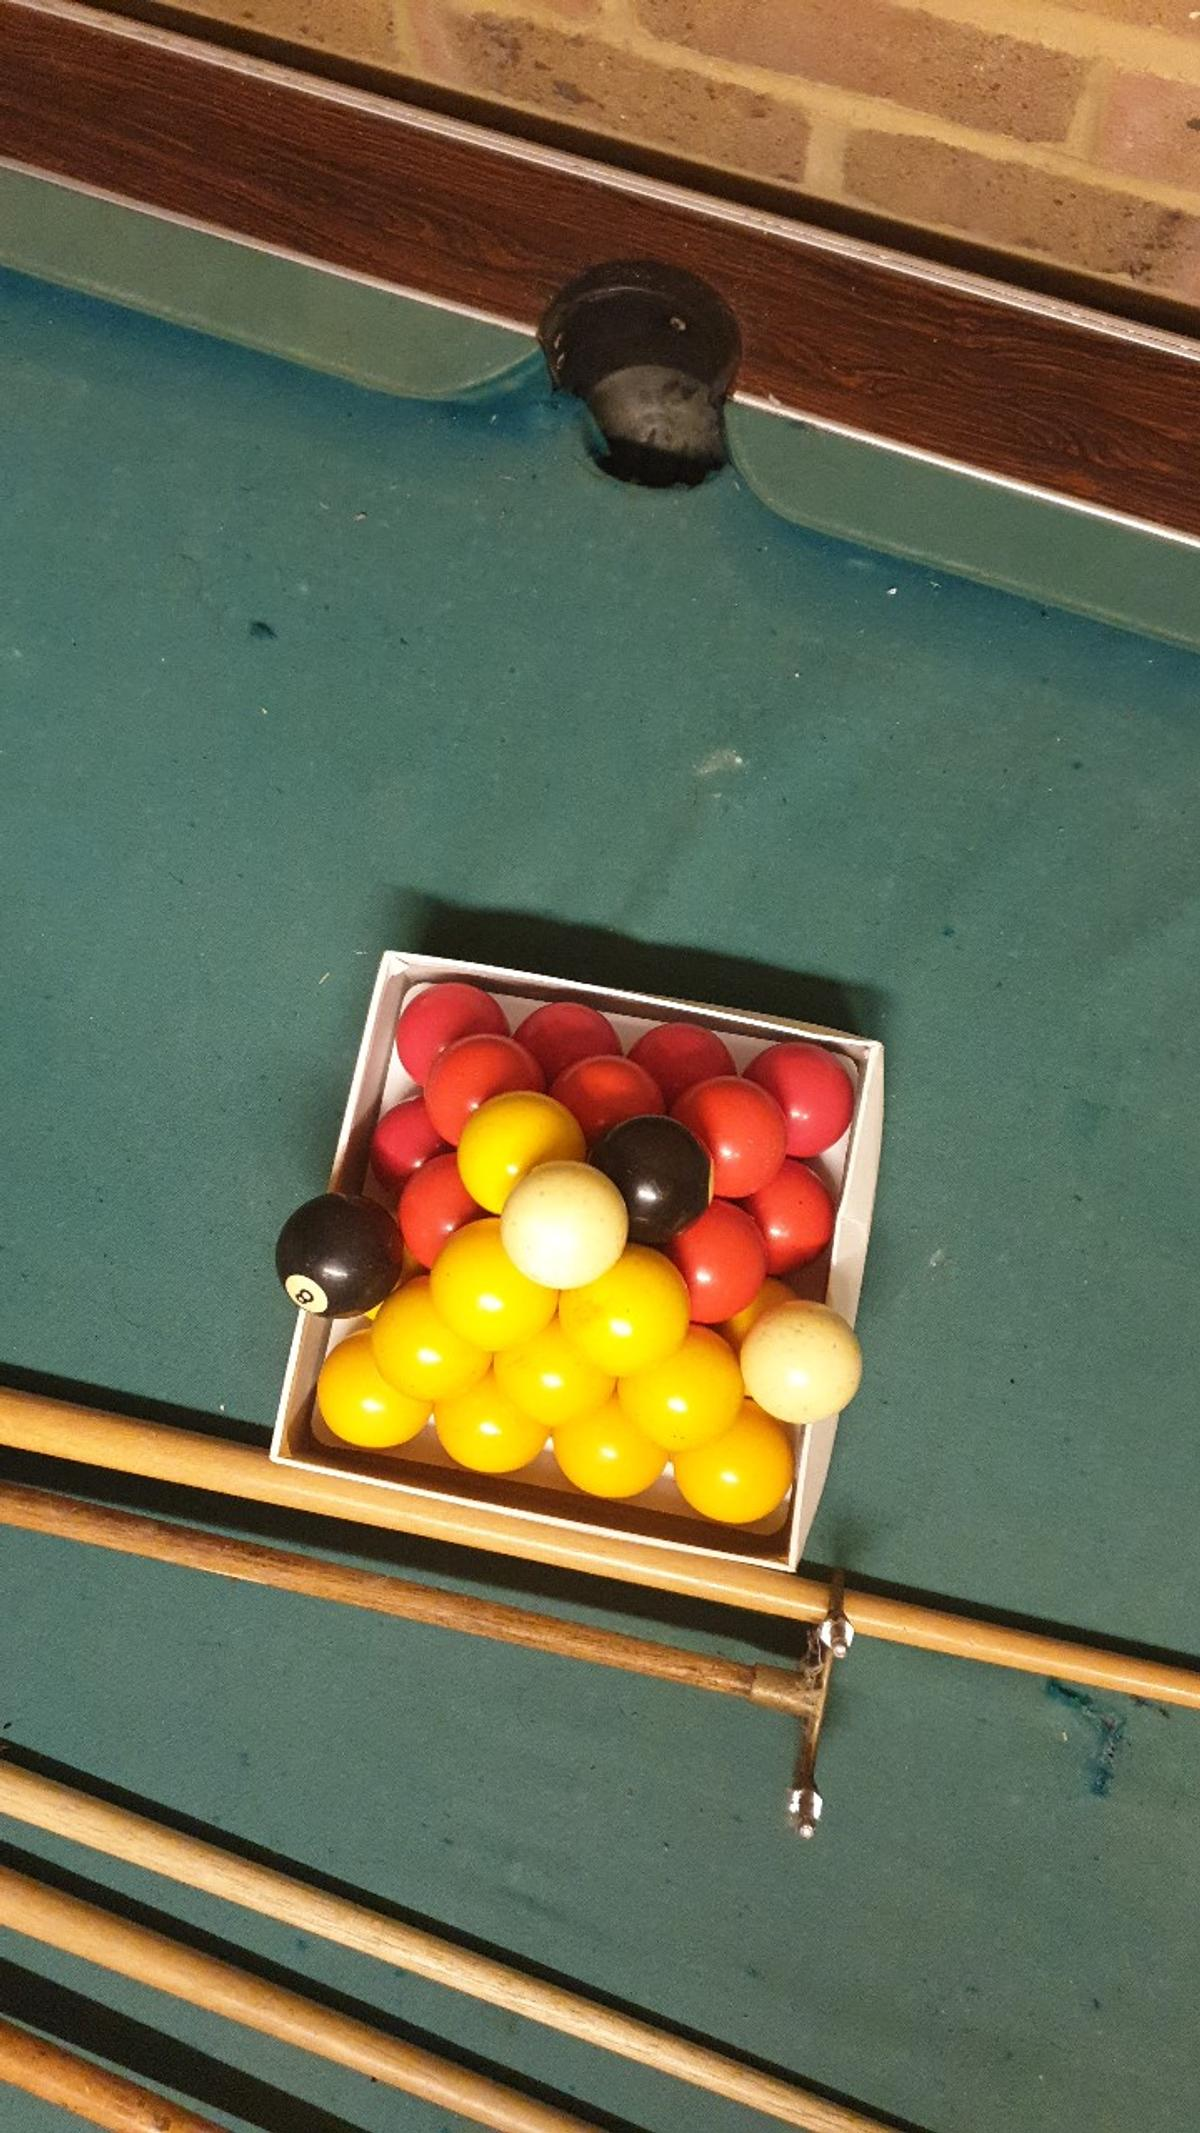 (Free play) coin operated pool table. Needs new felt (£35 on amazon). Cushions are fine. 3 cues, 2 rests, 2 white balls, 2 8balls, 14 yellow, 14 red. Collection only. Make me an offer